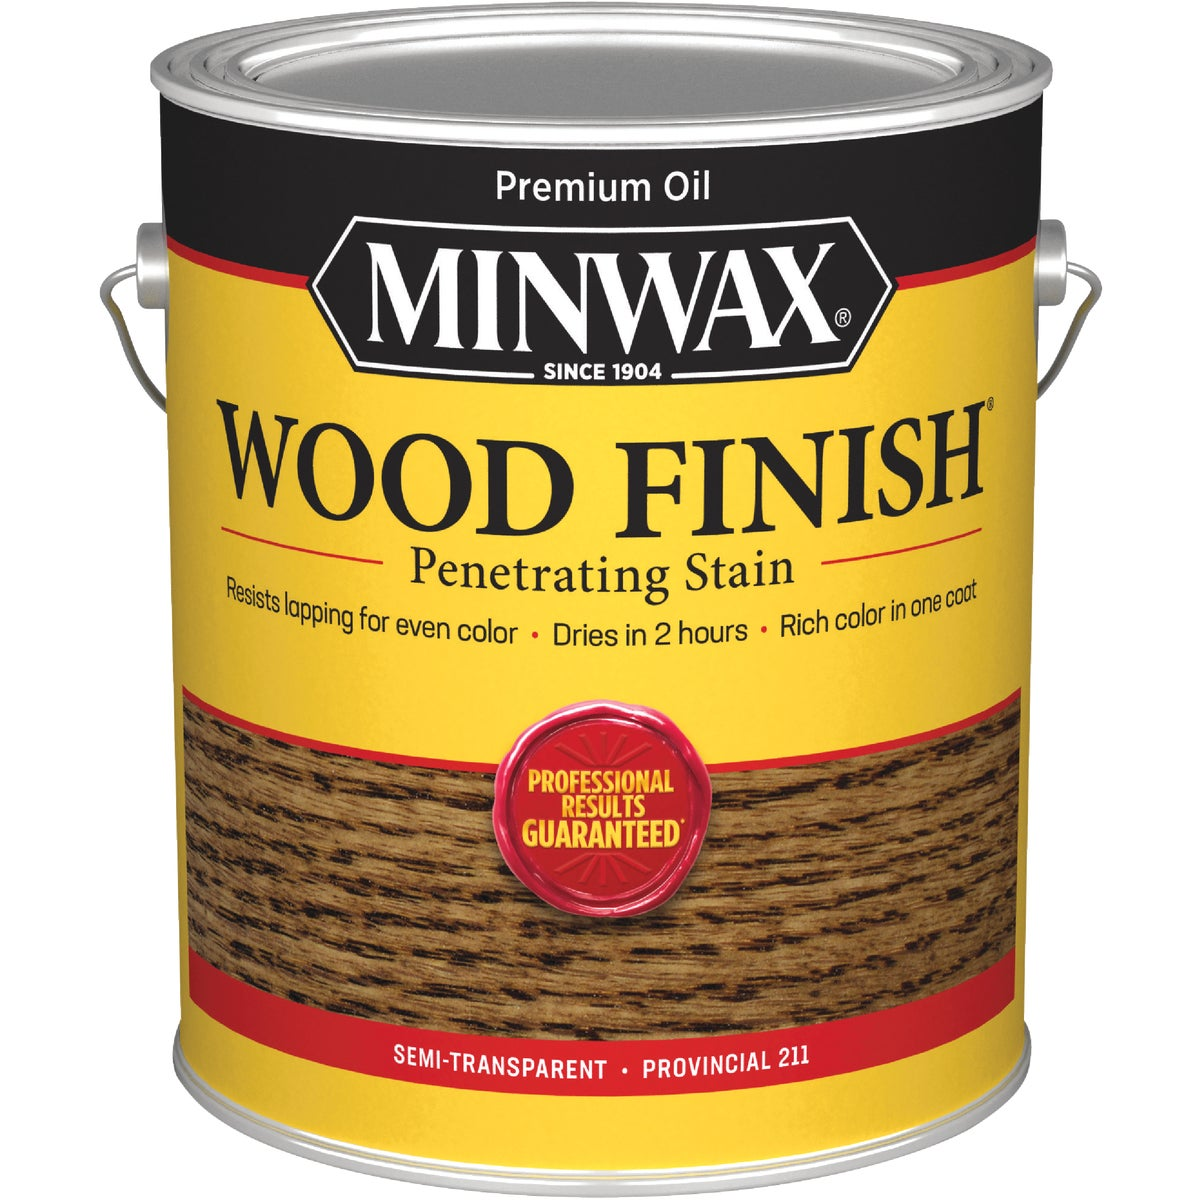 PROVINCIAL WOOD STAIN - 71002 by Minwax Company